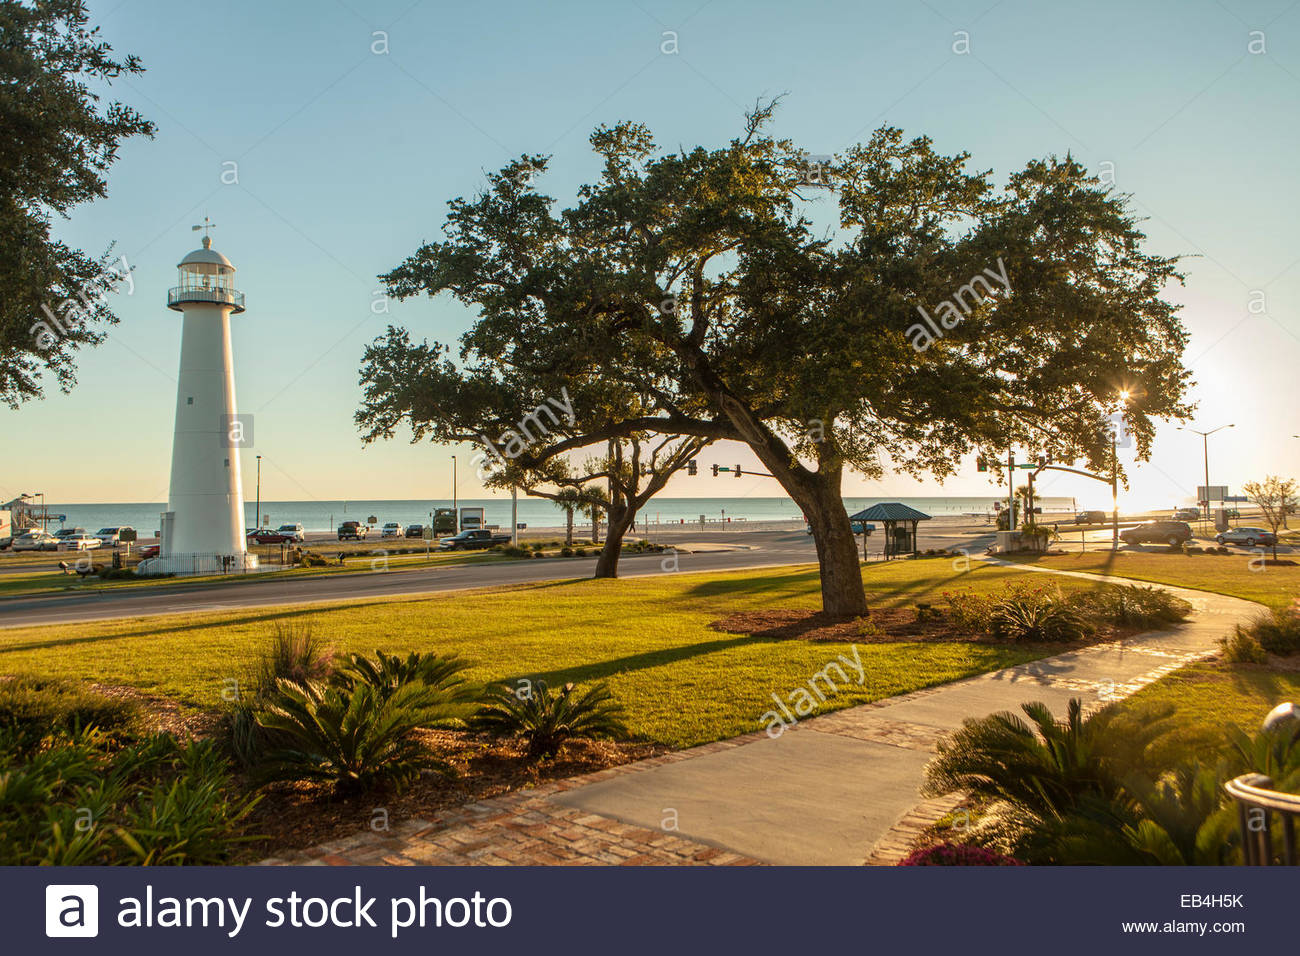 A path curves toward the historic Biloxi Light on the Gulf of Mexico during the afternoon golden hour. - Stock Image